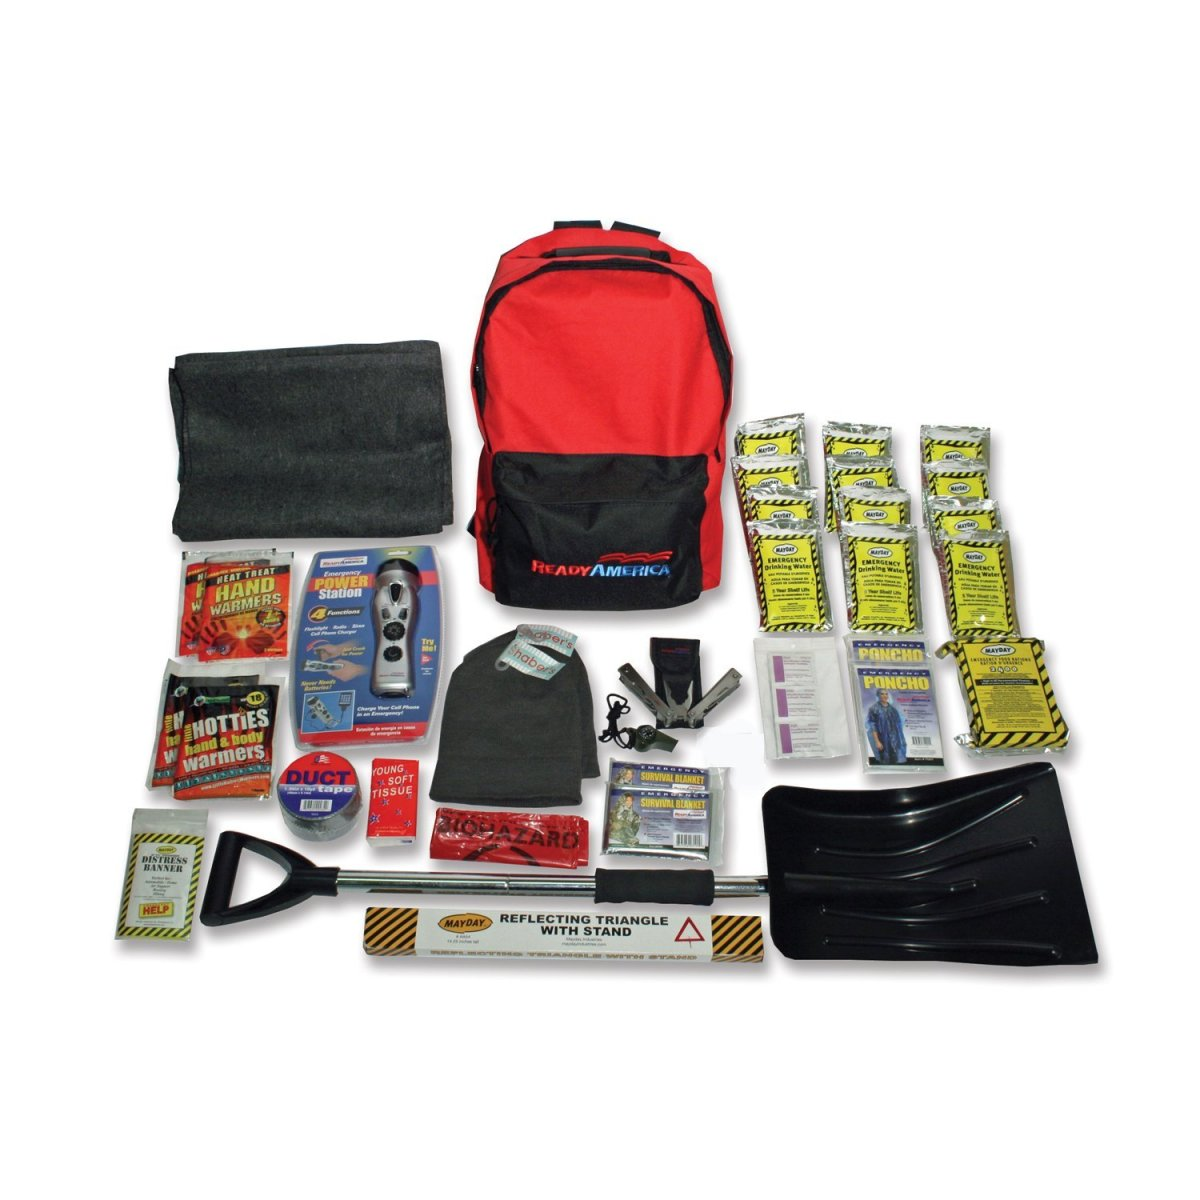 ready-america-emergency-kit